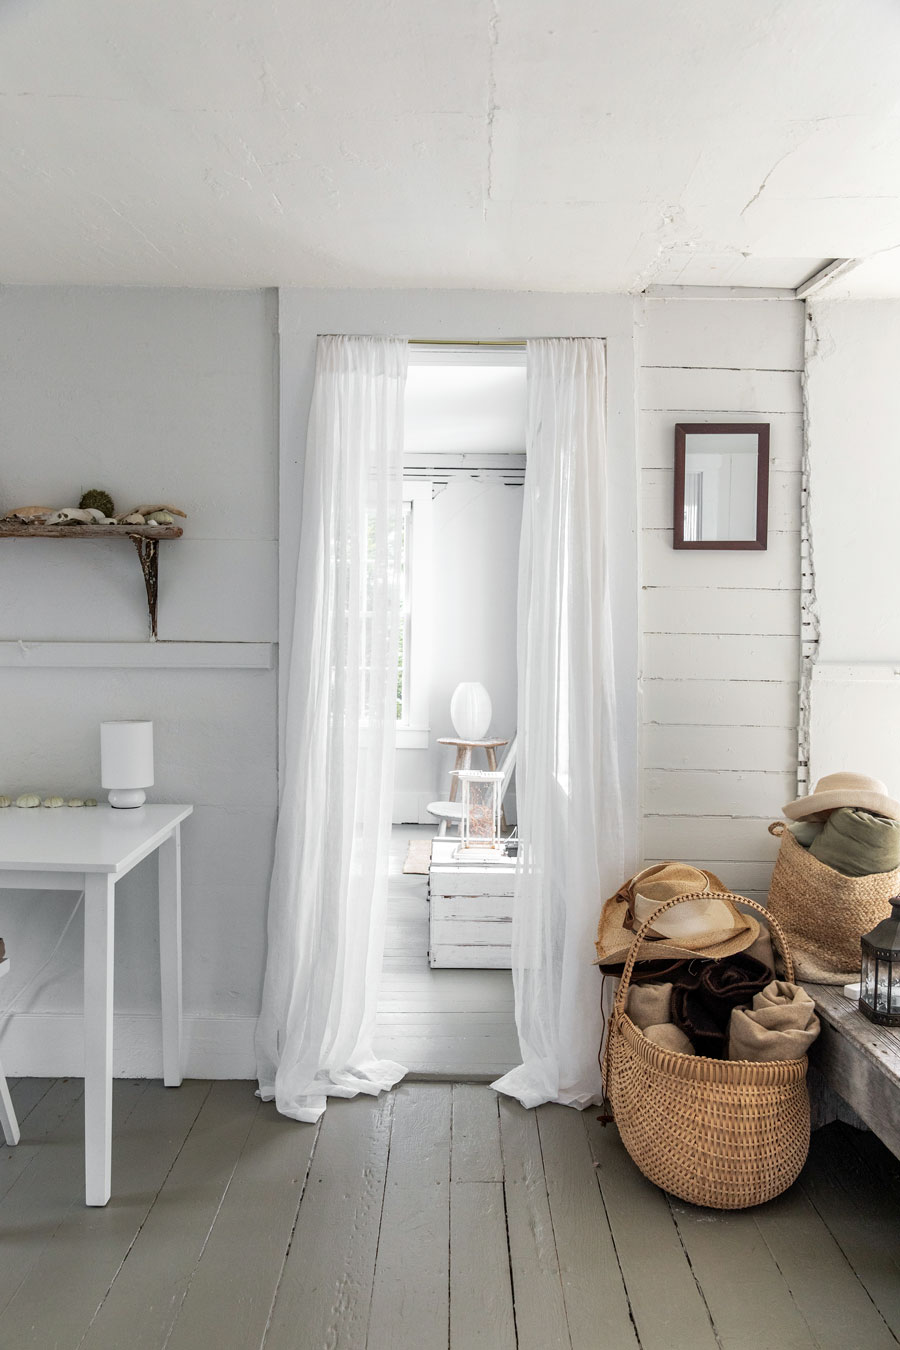 Alabaster walls, sea-smoke floors, and sheer curtains create an ethereal vibe in a guest/sitting room, minimally furnished with beach and thrift store finds.